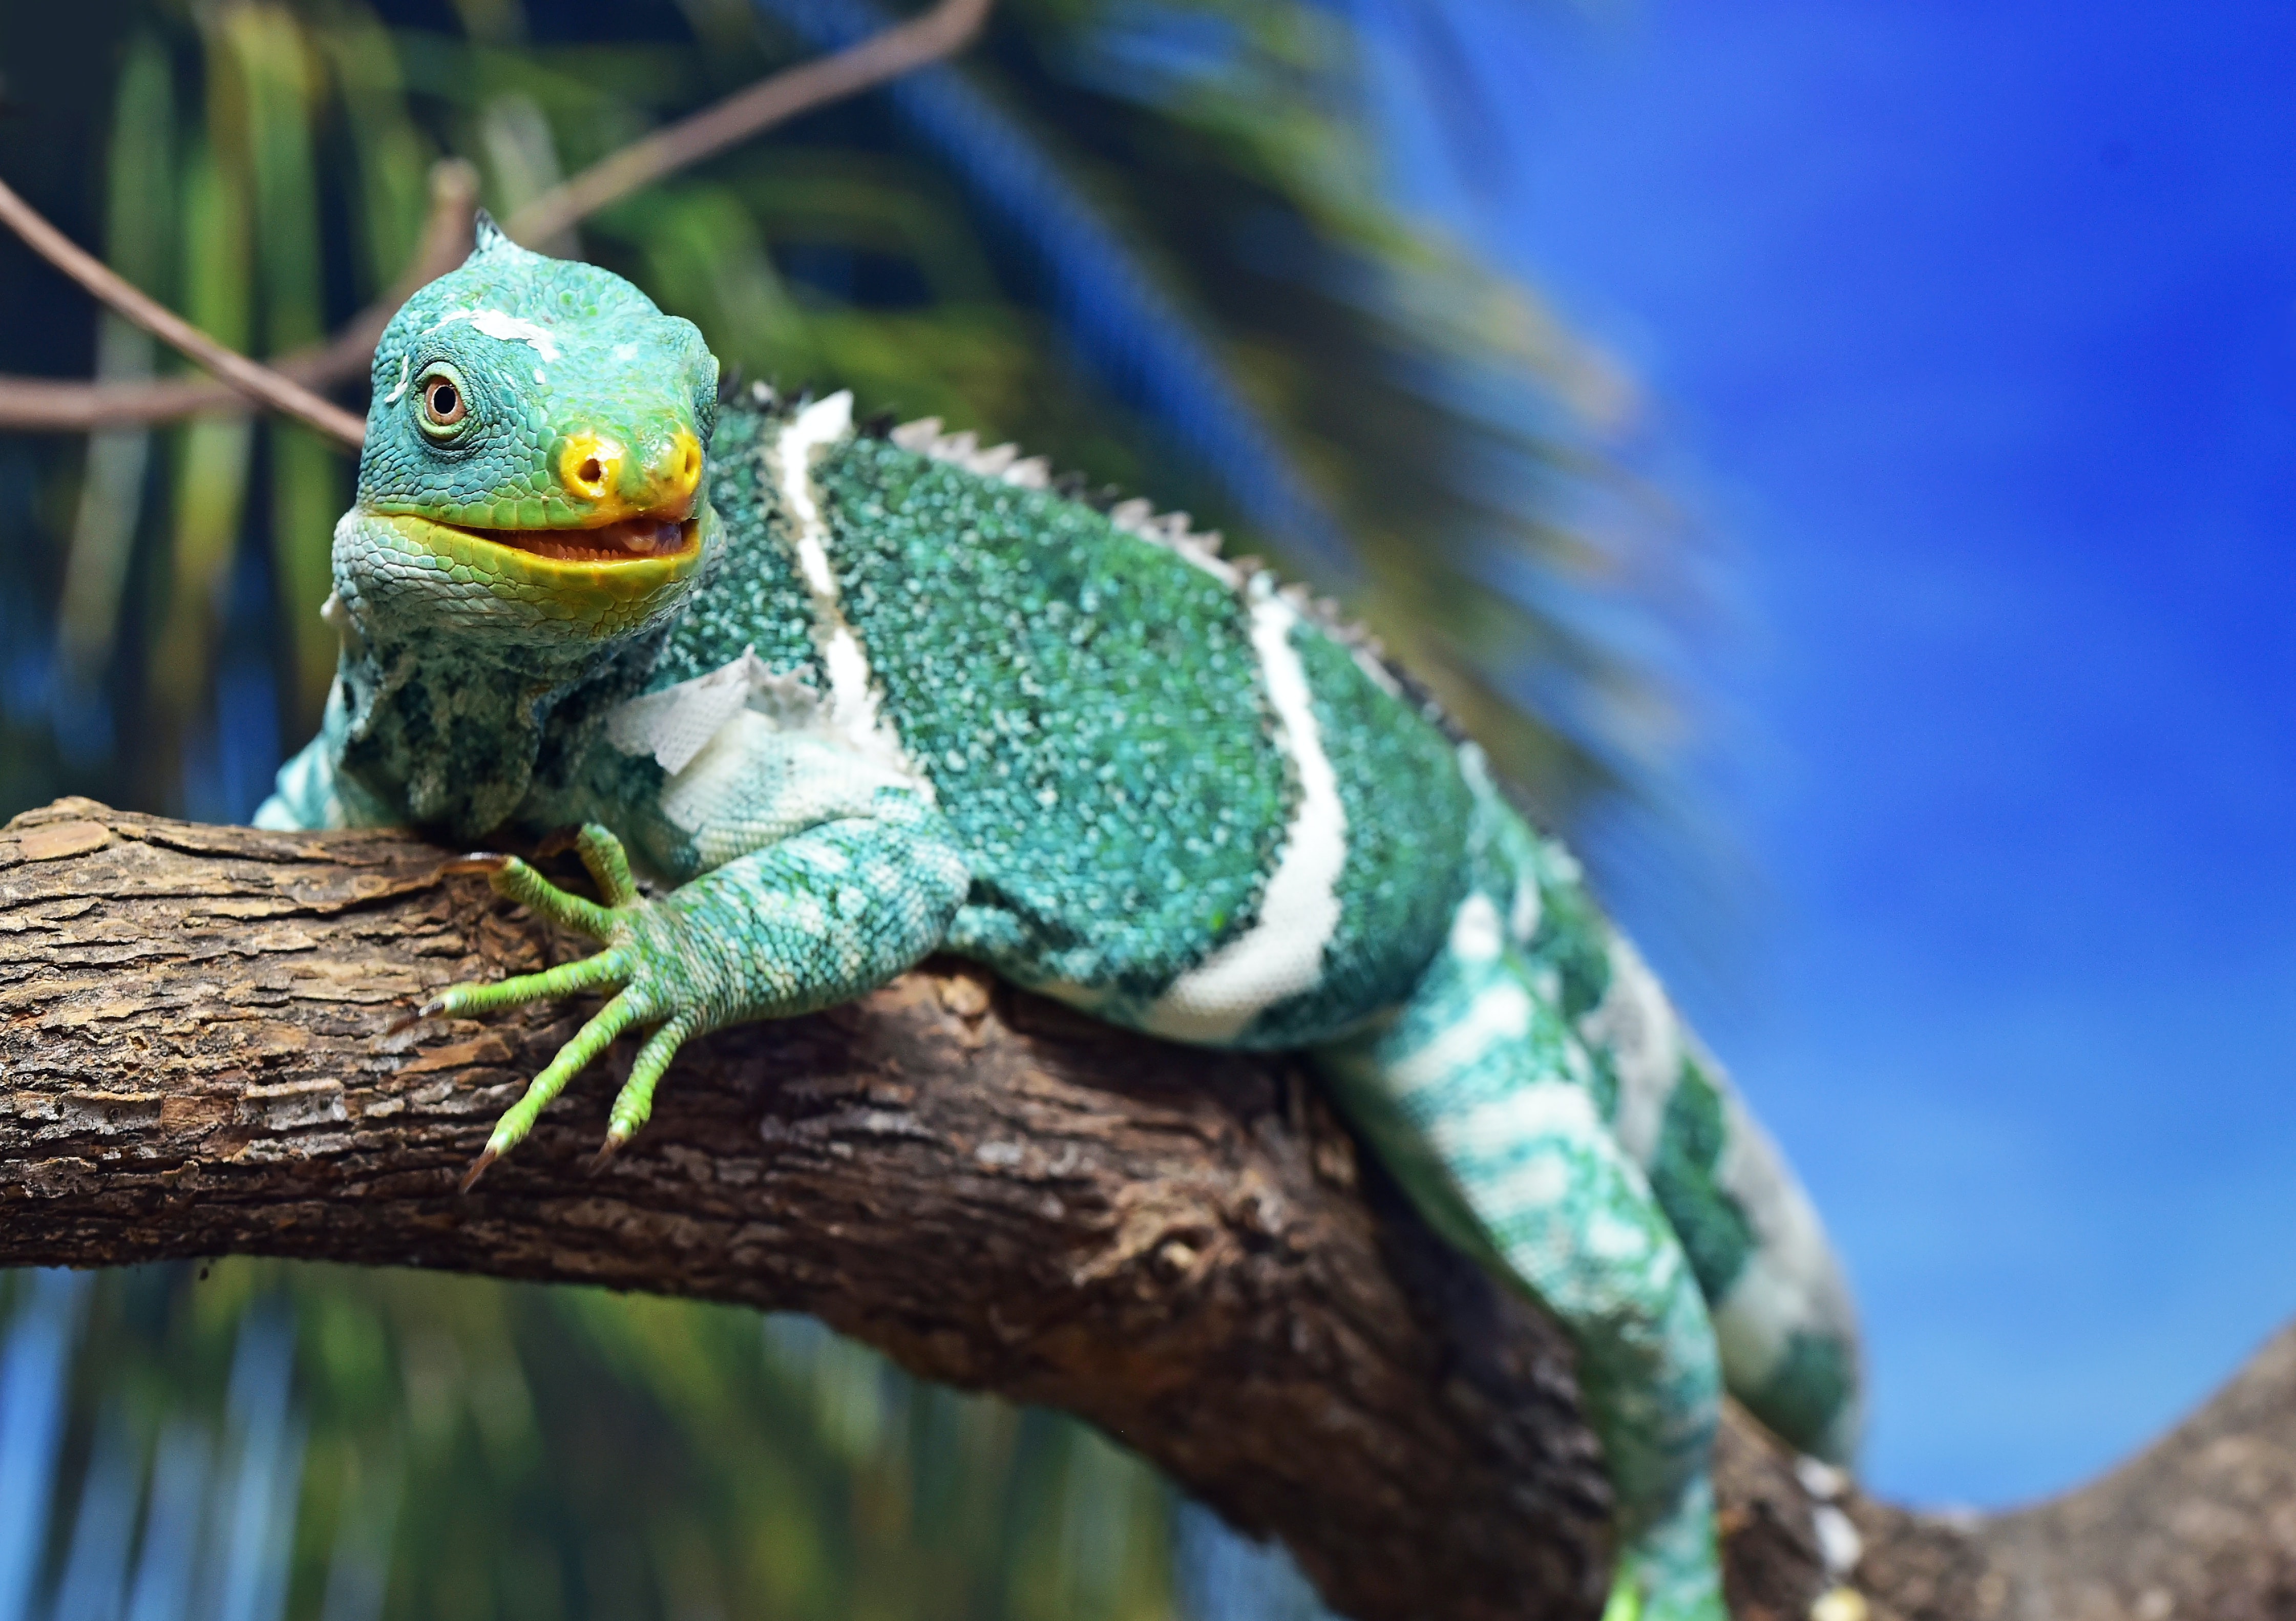 green and white reptile on wood branch